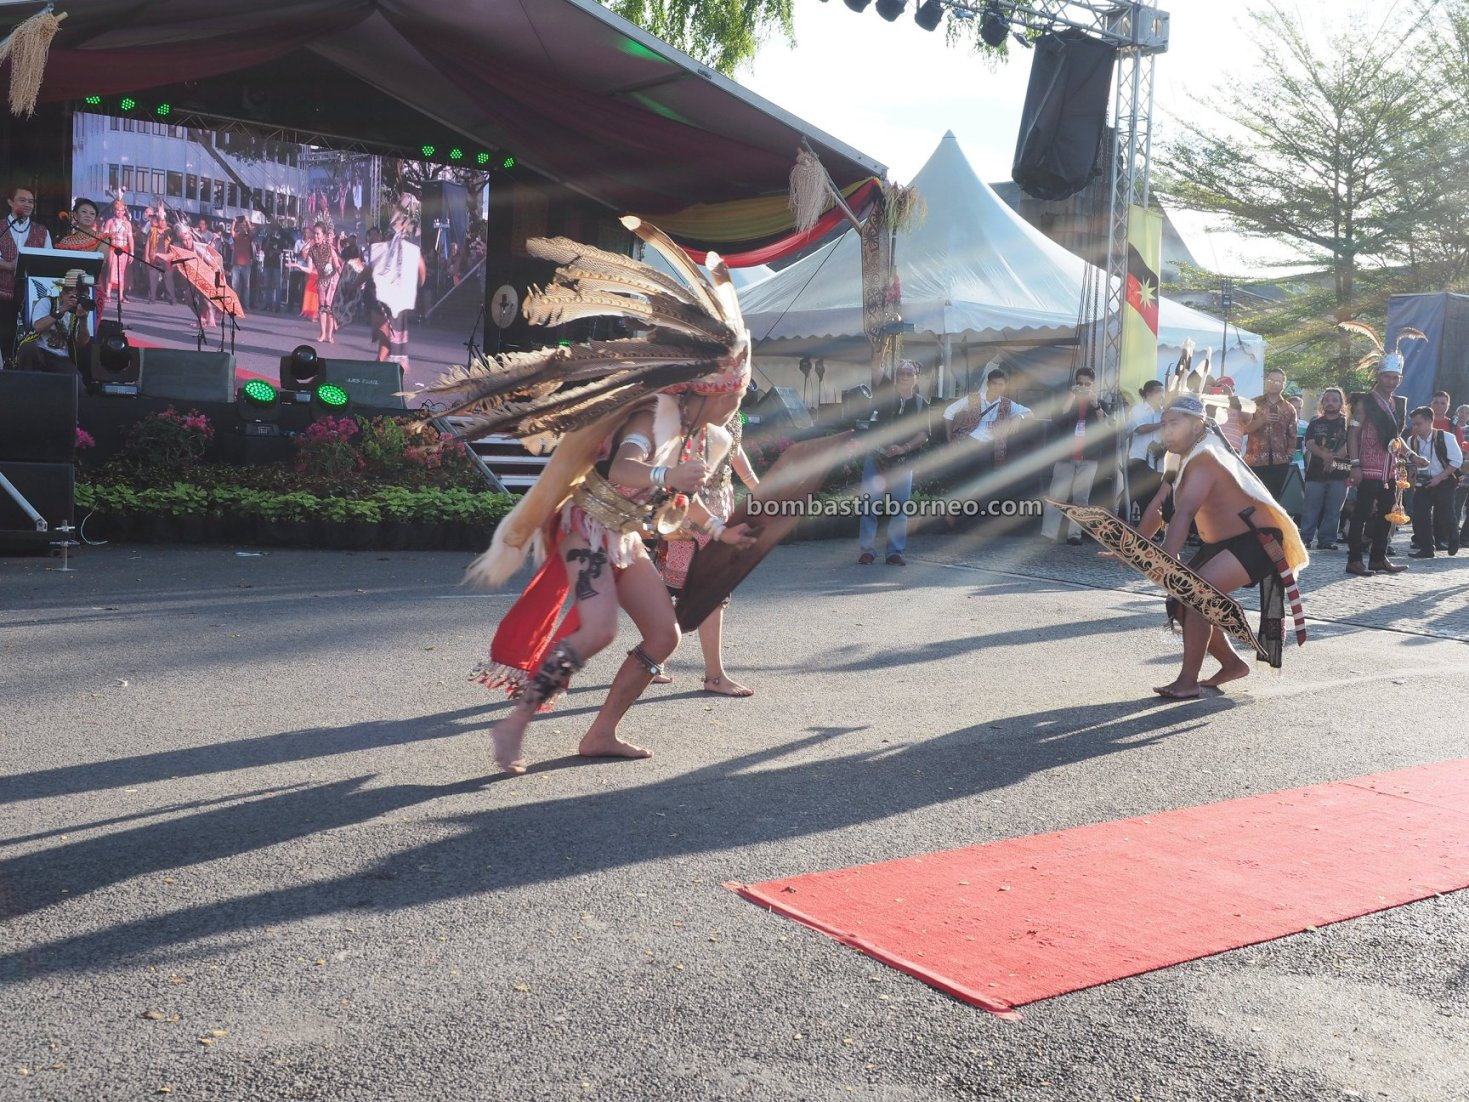 Gawai Dayak, paddy harvest festival, authentic, event, backpackers, Kuching Waterfront, native, tribe, tourism, tourist attraction, Travel guide, Trans Border, 婆罗洲达雅丰收节日, 砂拉越马来西亚文化, 原住民土著部落,